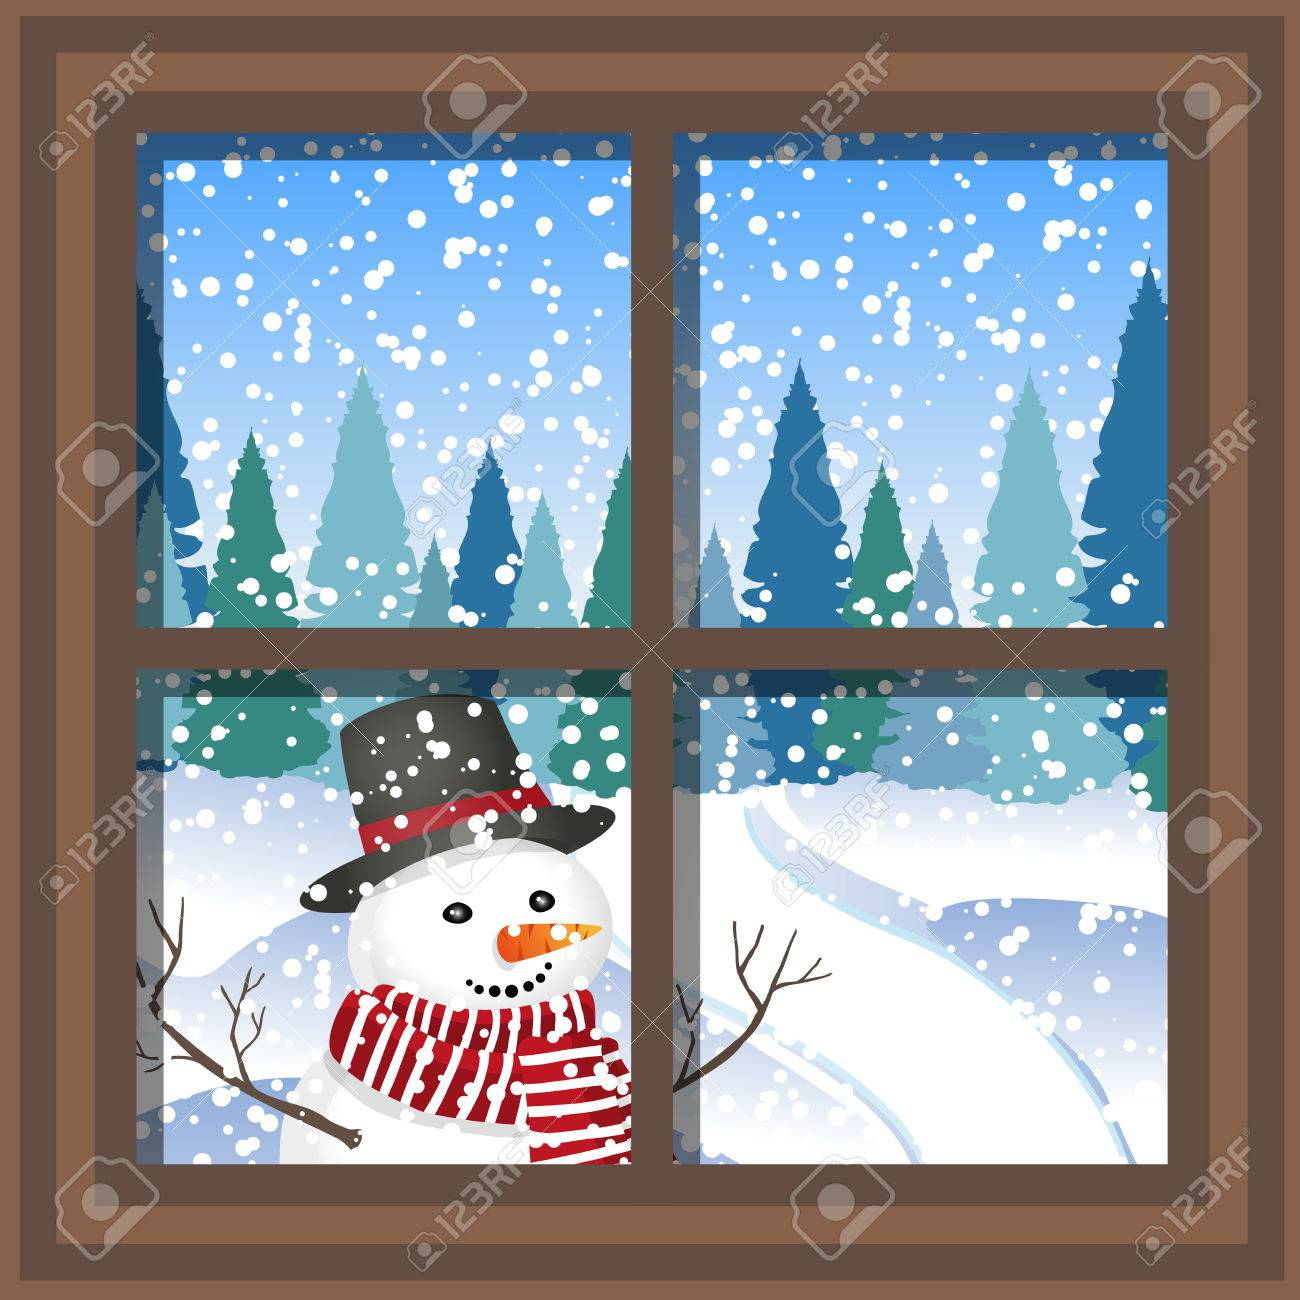 winter Christmas window with a view of the snowy forest. - 71713022